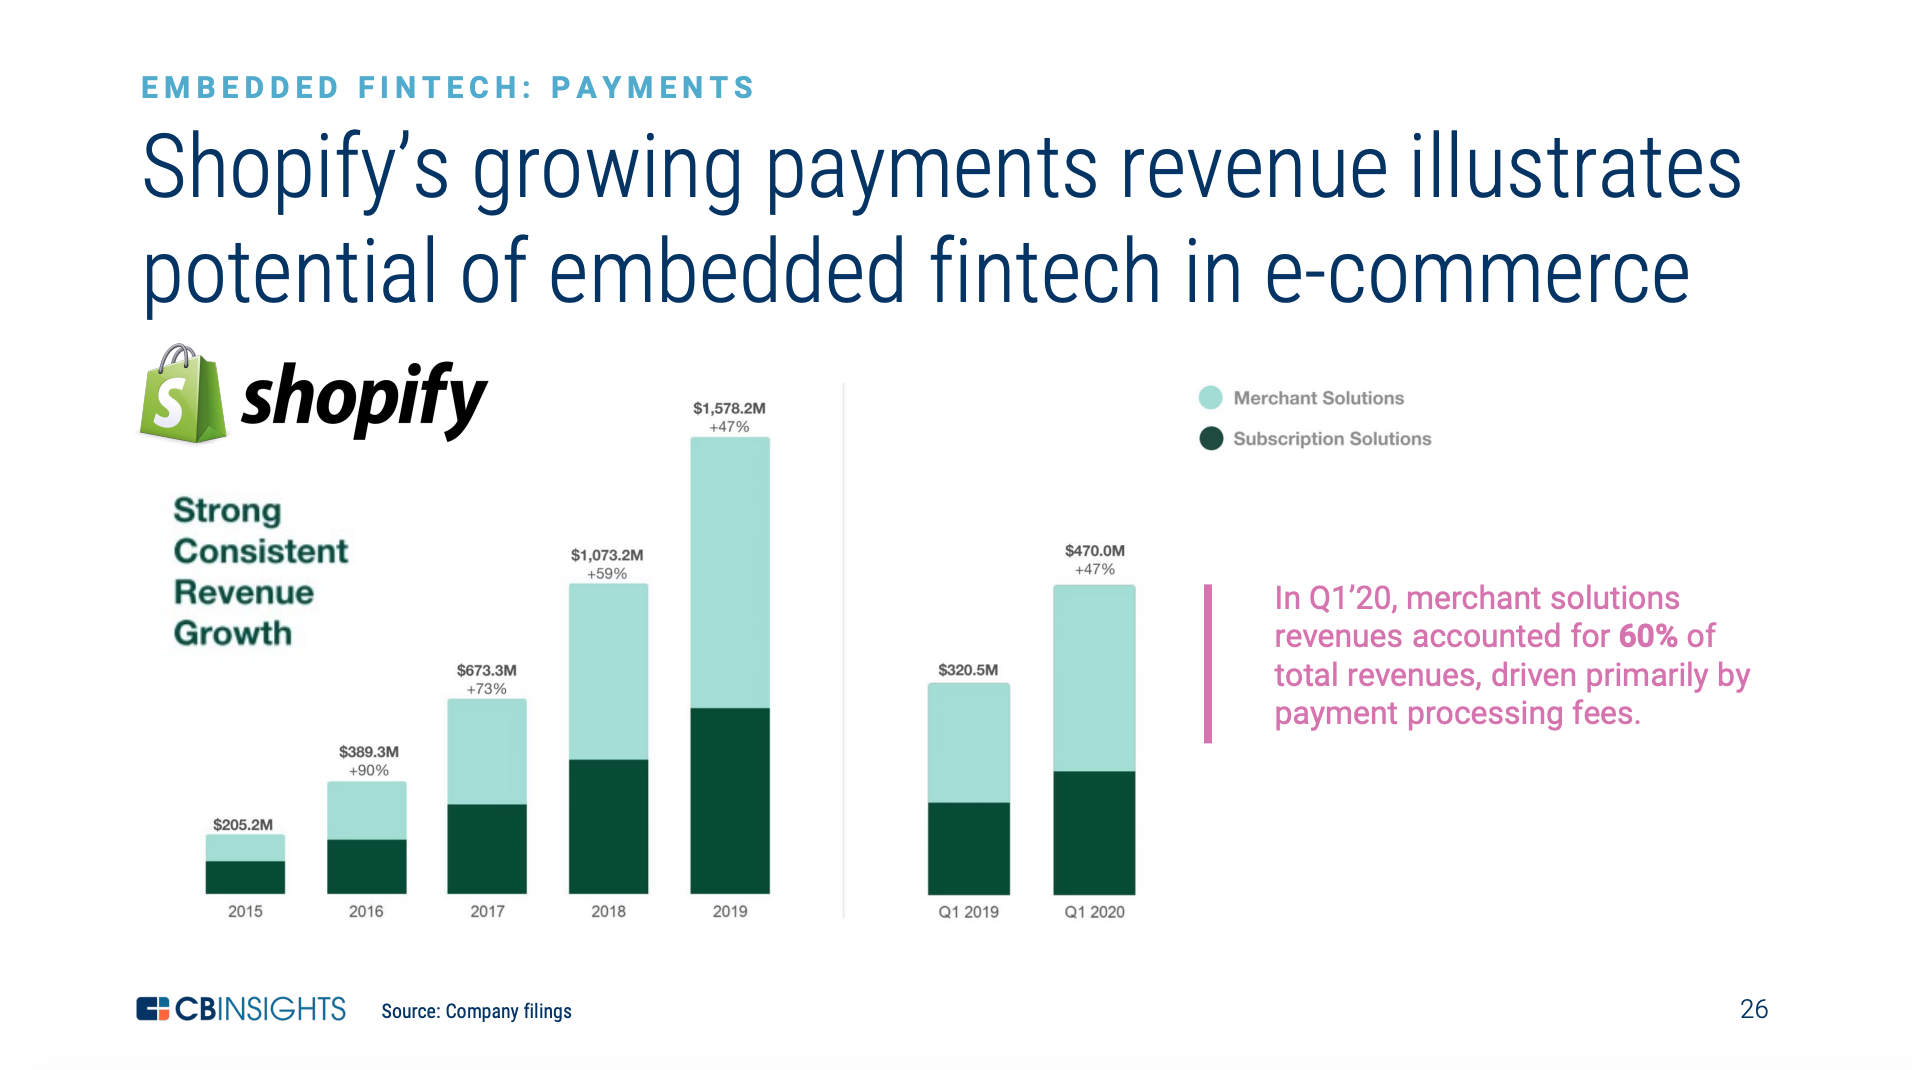 Shopify's payments revenue growth, The State of Fintech Q2'20 Report, CB Insights